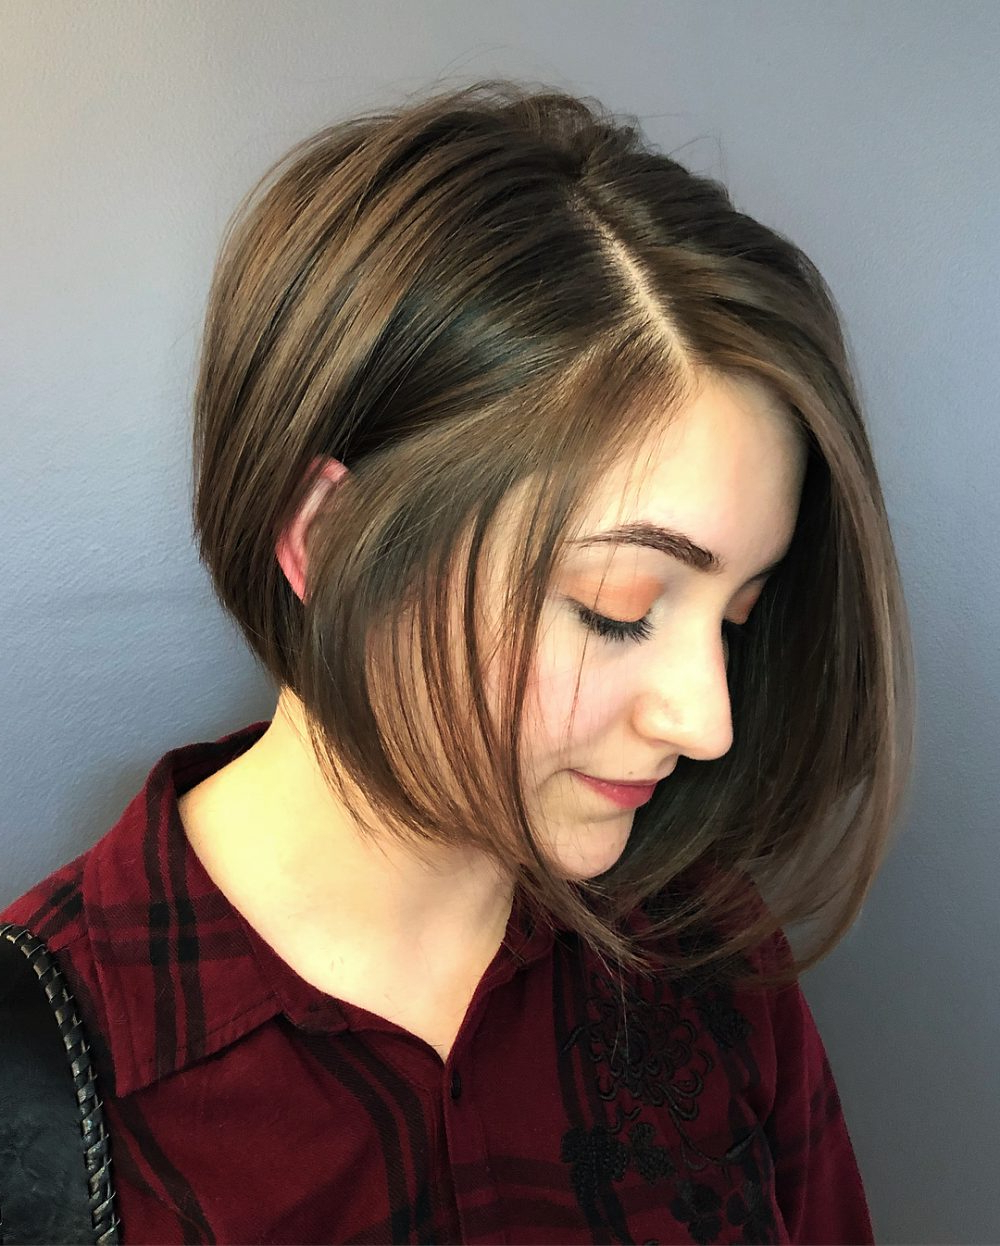 34 Most Flattering Short Hairstyles For Round Faces Pertaining To Color Highlights Short Hairstyles For Round Face Types (View 3 of 20)